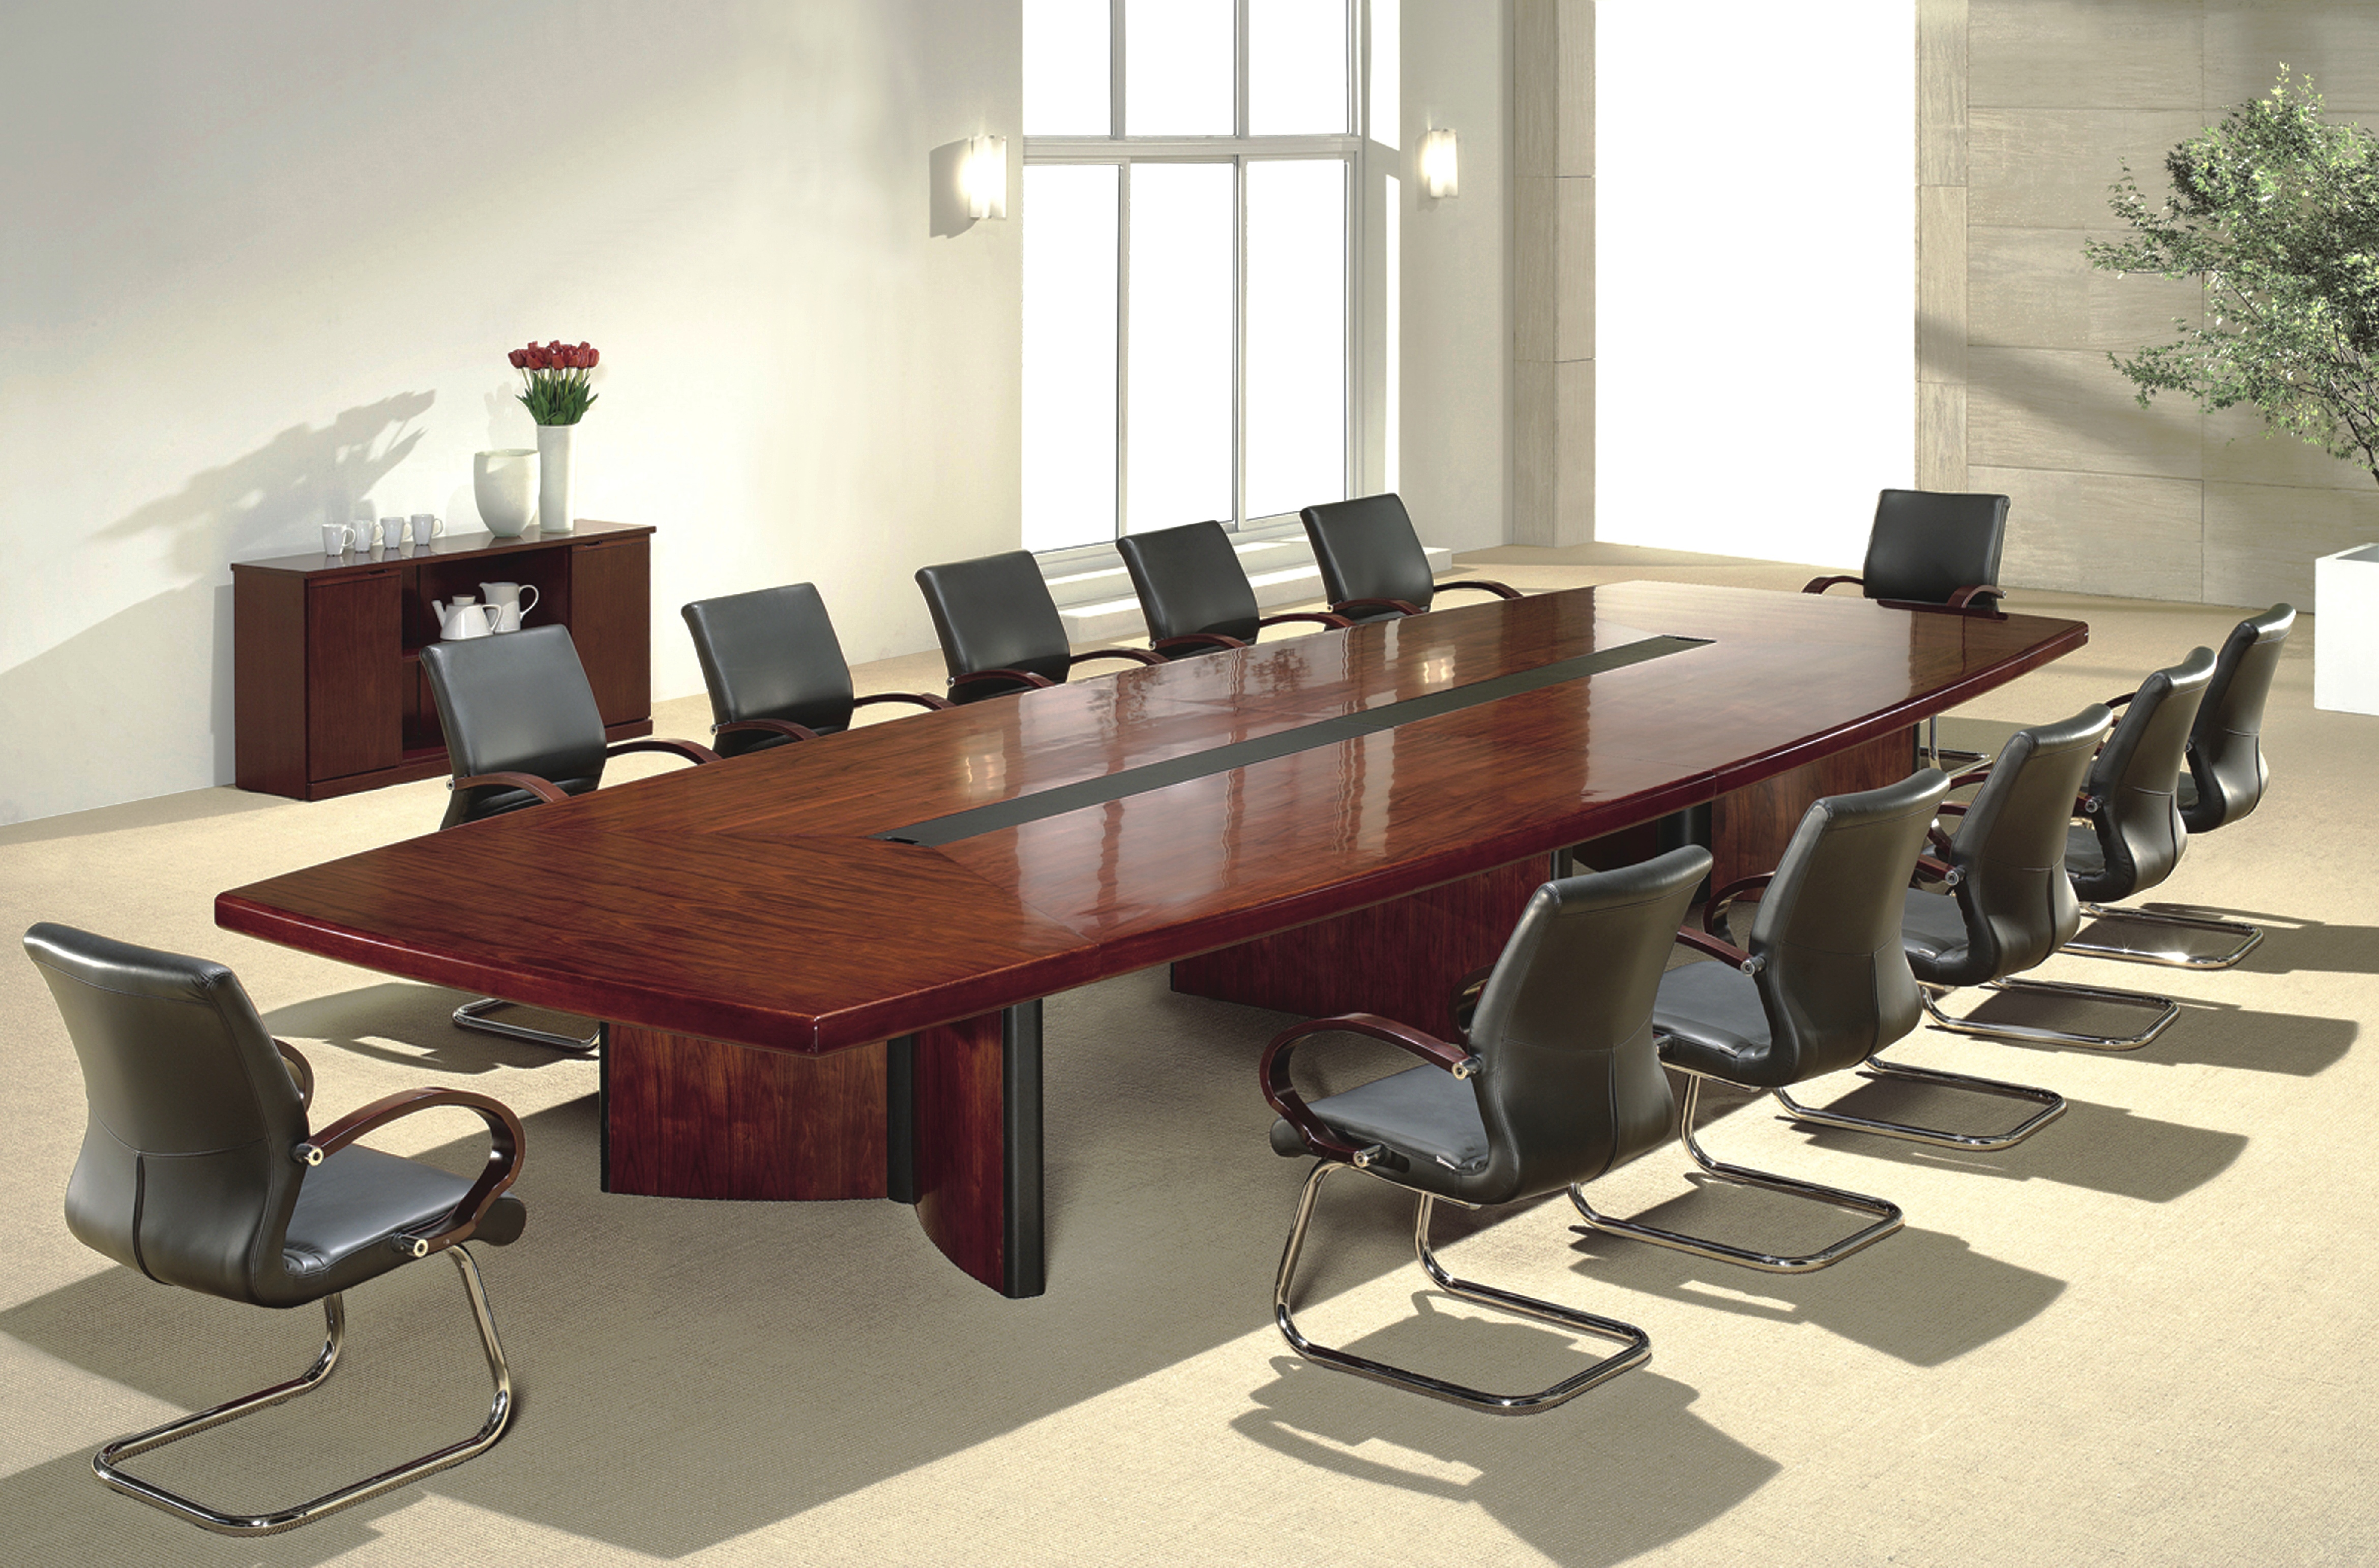 Board Room Tables Office Furniture Chairs Supplies In Dublin - Boardroom table accessories